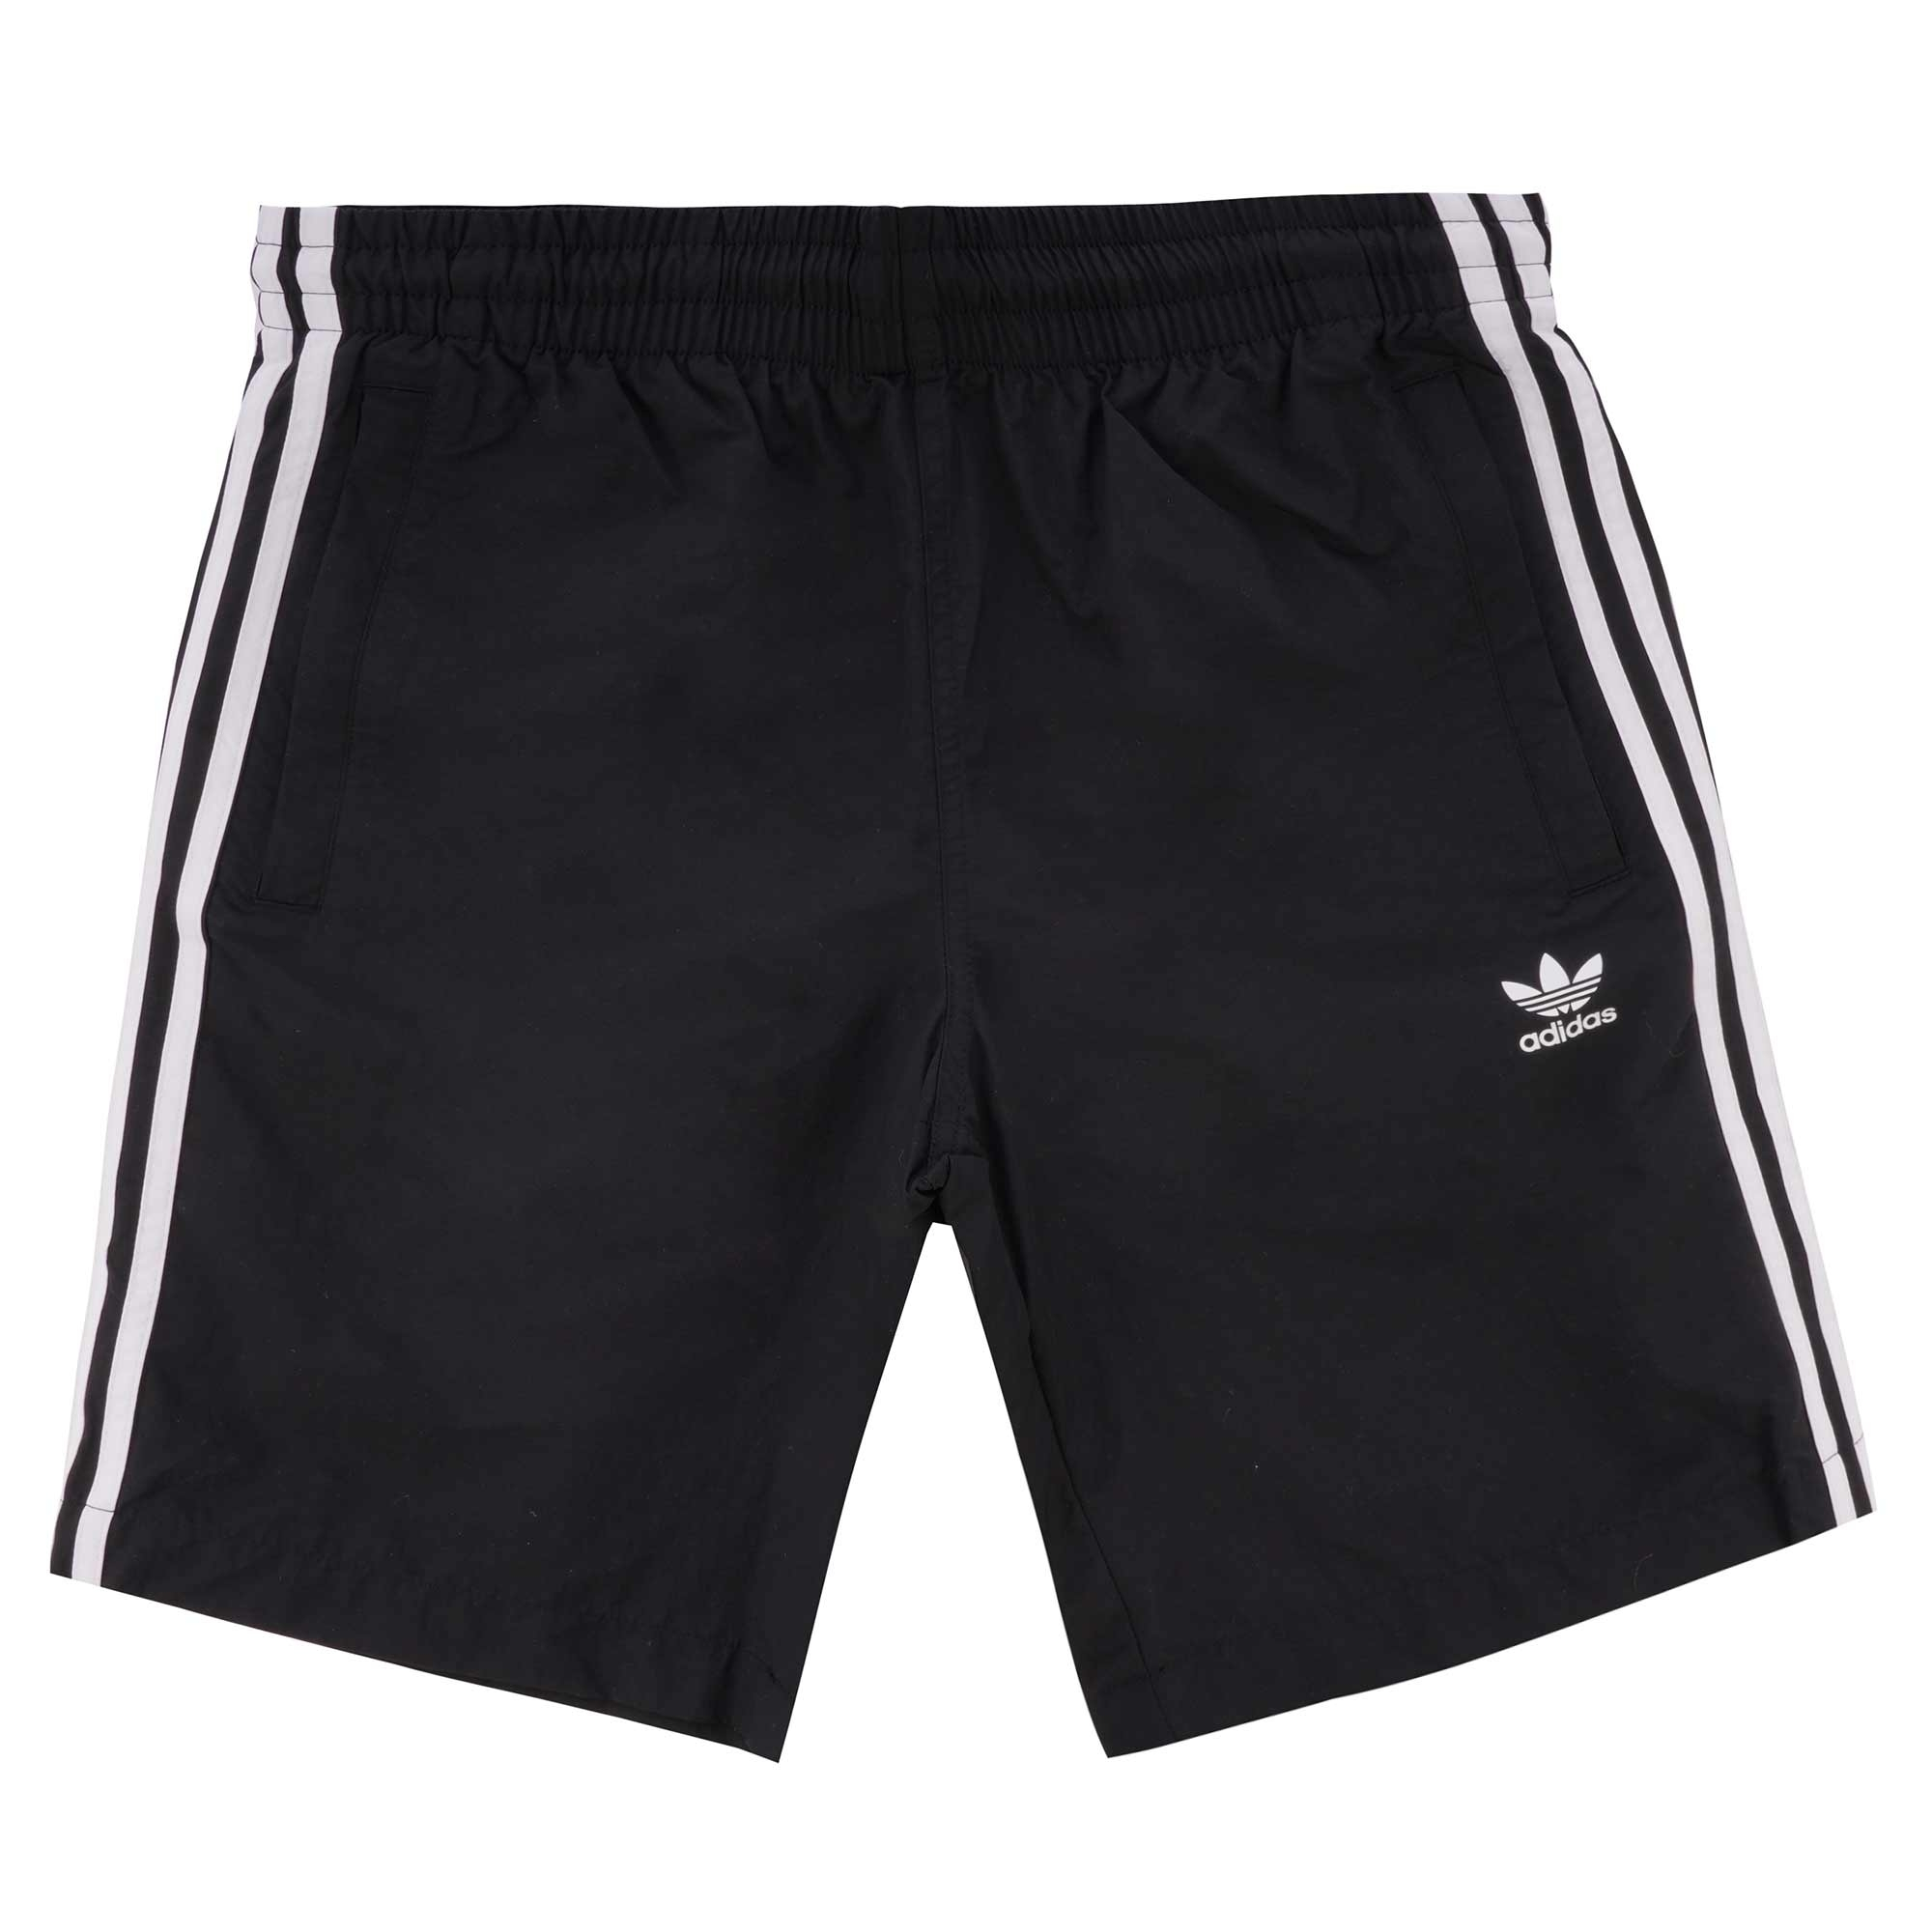 4cde6af44d adidas Originals 3-Stripes Swim Shorts | Black | CW1305